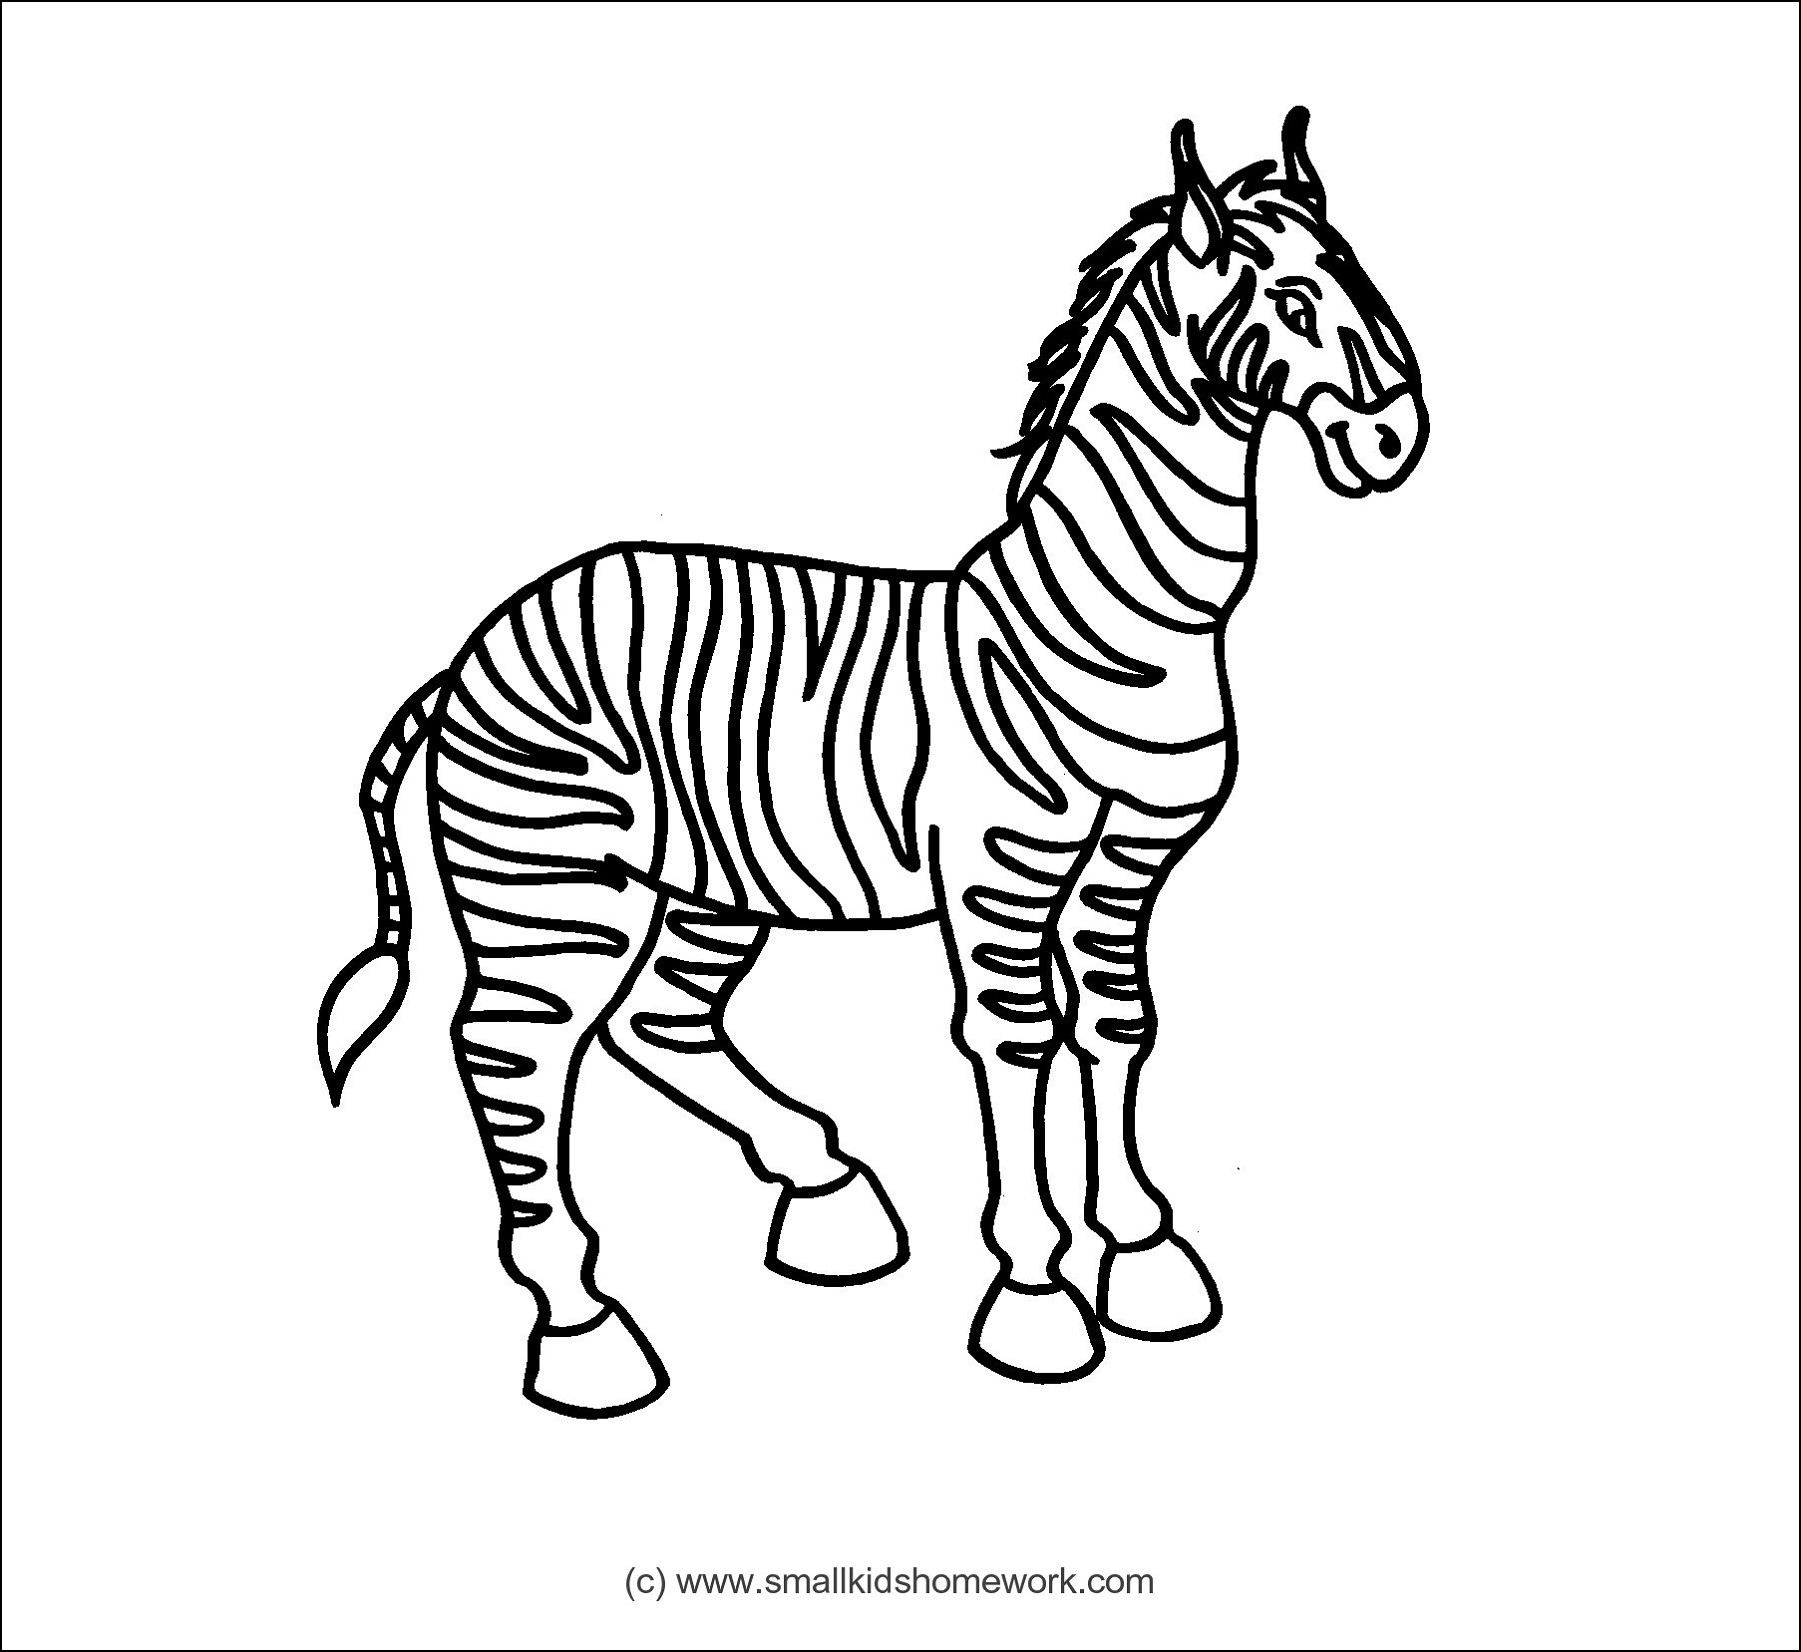 1801x1652 Horse Running Animals Coloring Pages For Kids Best Of Zebra